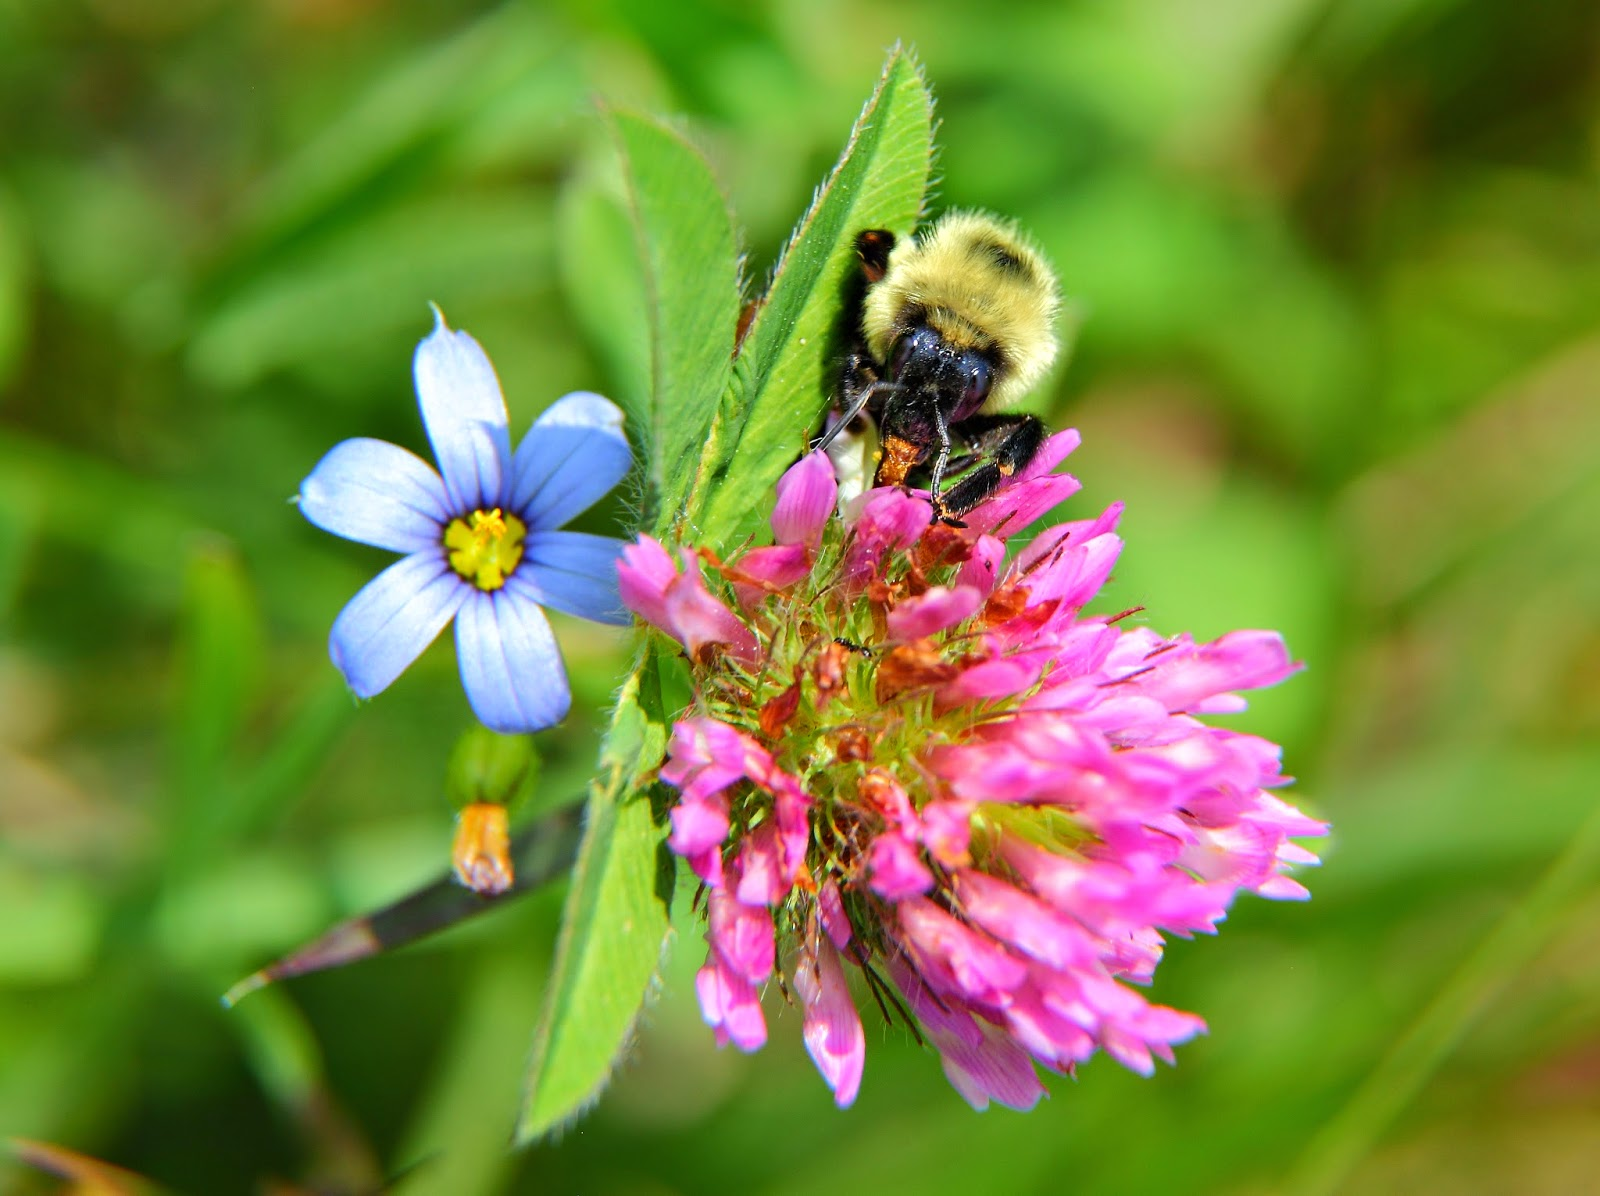 A large bumble bee gathering the abundant nectar from a summer clover flower. In the background a small blue field flower brightens the aspect of this picture. Picture Height: 2770 pixels | Picture Width: 3706 pixels | Lens Aperture: f/8 | Image Exposure Time: 1/180 sec | Lens Focal Length mm: 105 mm | Photo Exposure Value: 0 EV | Camera Model: Canon EOS 5D Mark II | Photo White Balance: 0 | Color Space: sRGB | ForestWander Nature Photography: ForestWander Nature Photography | ForestWander: ForestWander.com | Key Terms: abundant, Bumble Bee, clover, field flower, Flower, nectar, summer,